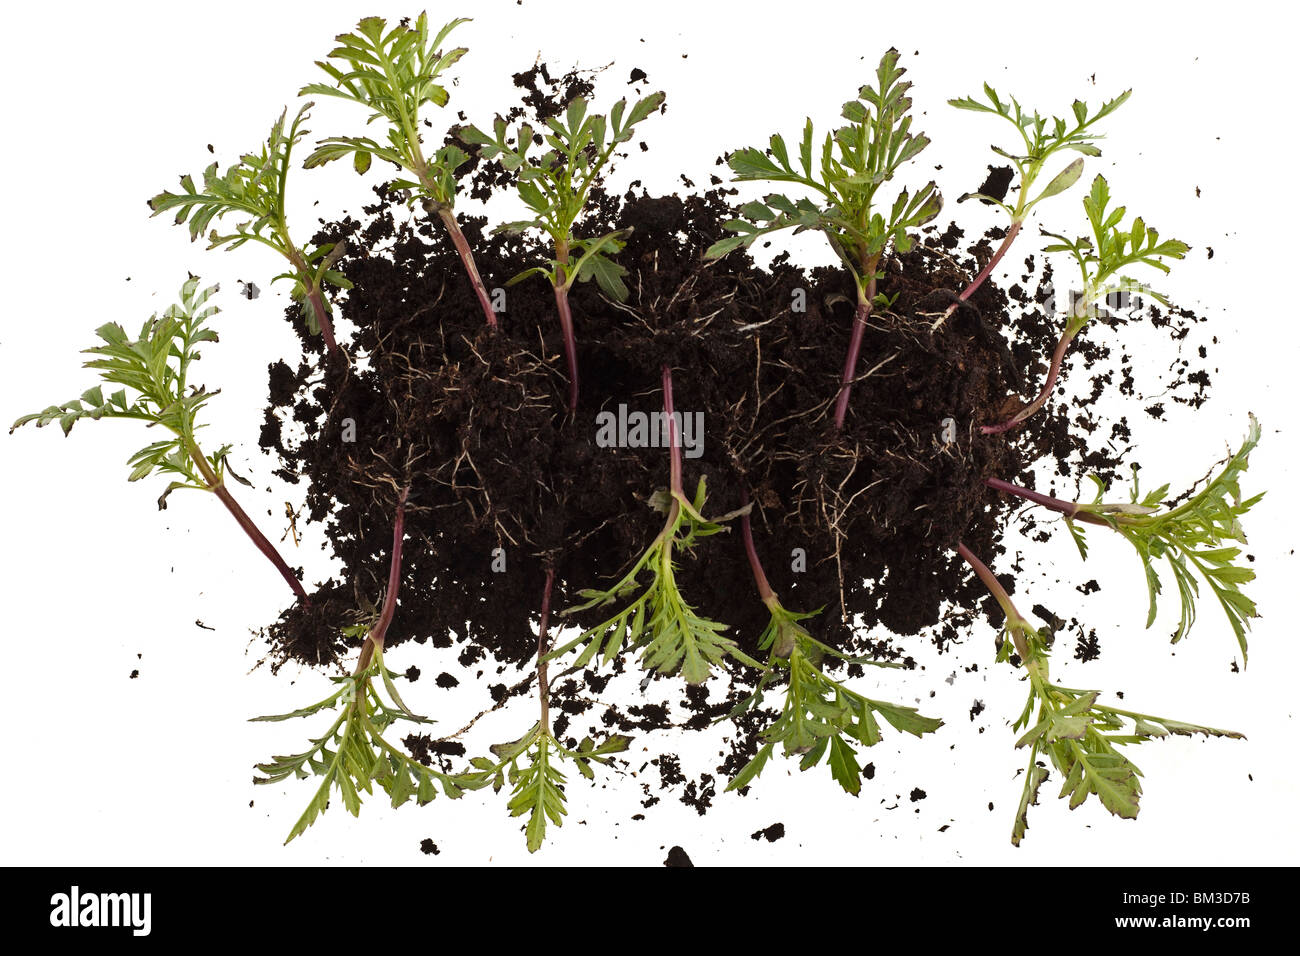 Pile of dwarf marigold seedlings ready for transplanting - Stock Image